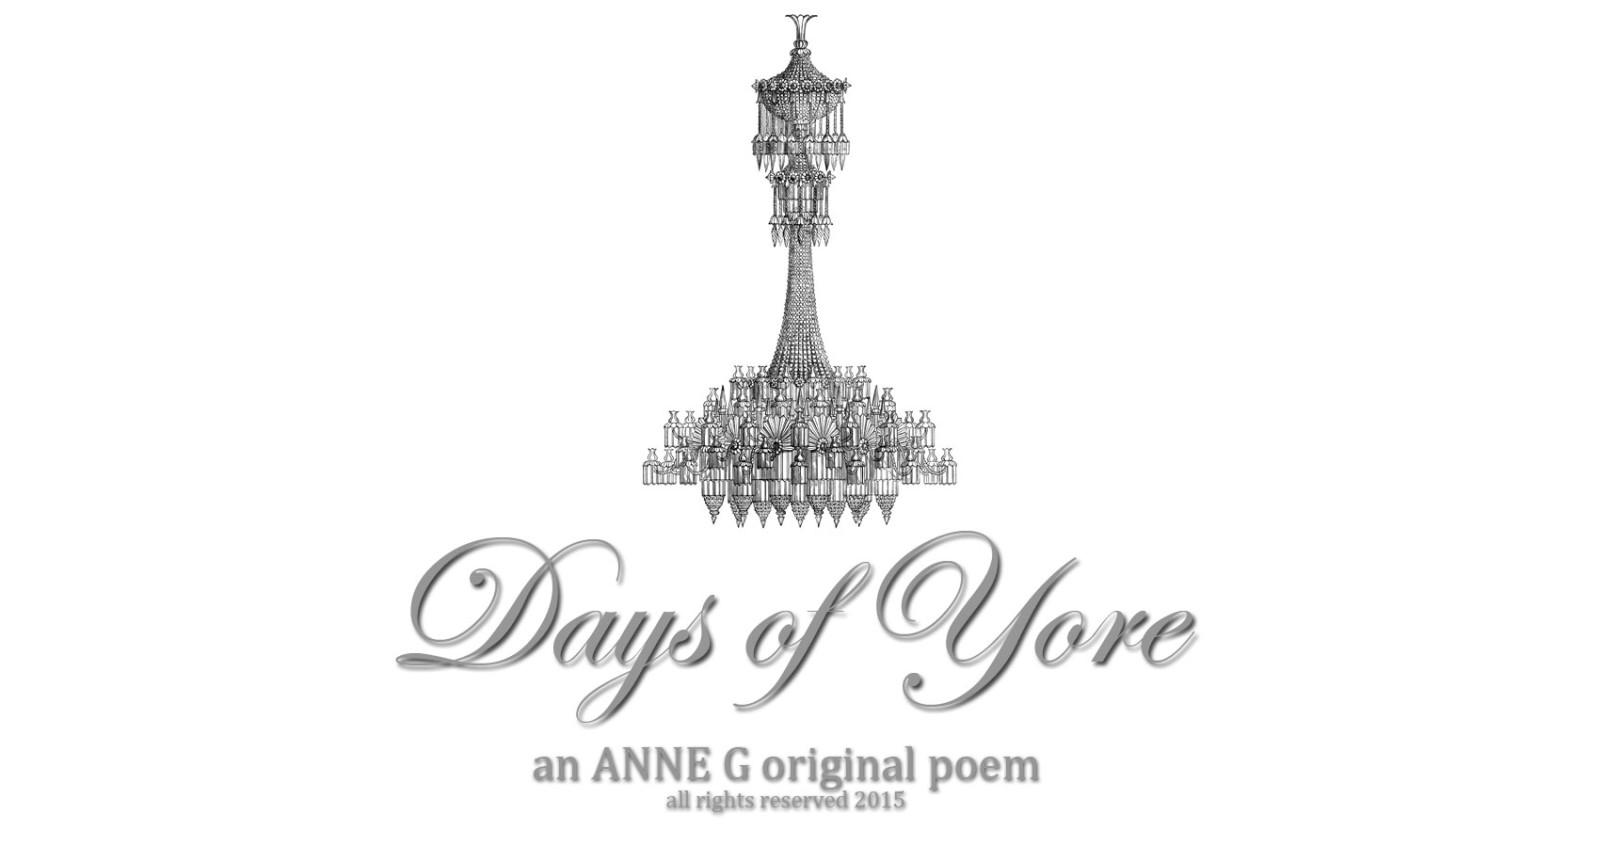 Days of Yore by Anne G at spillwords.com